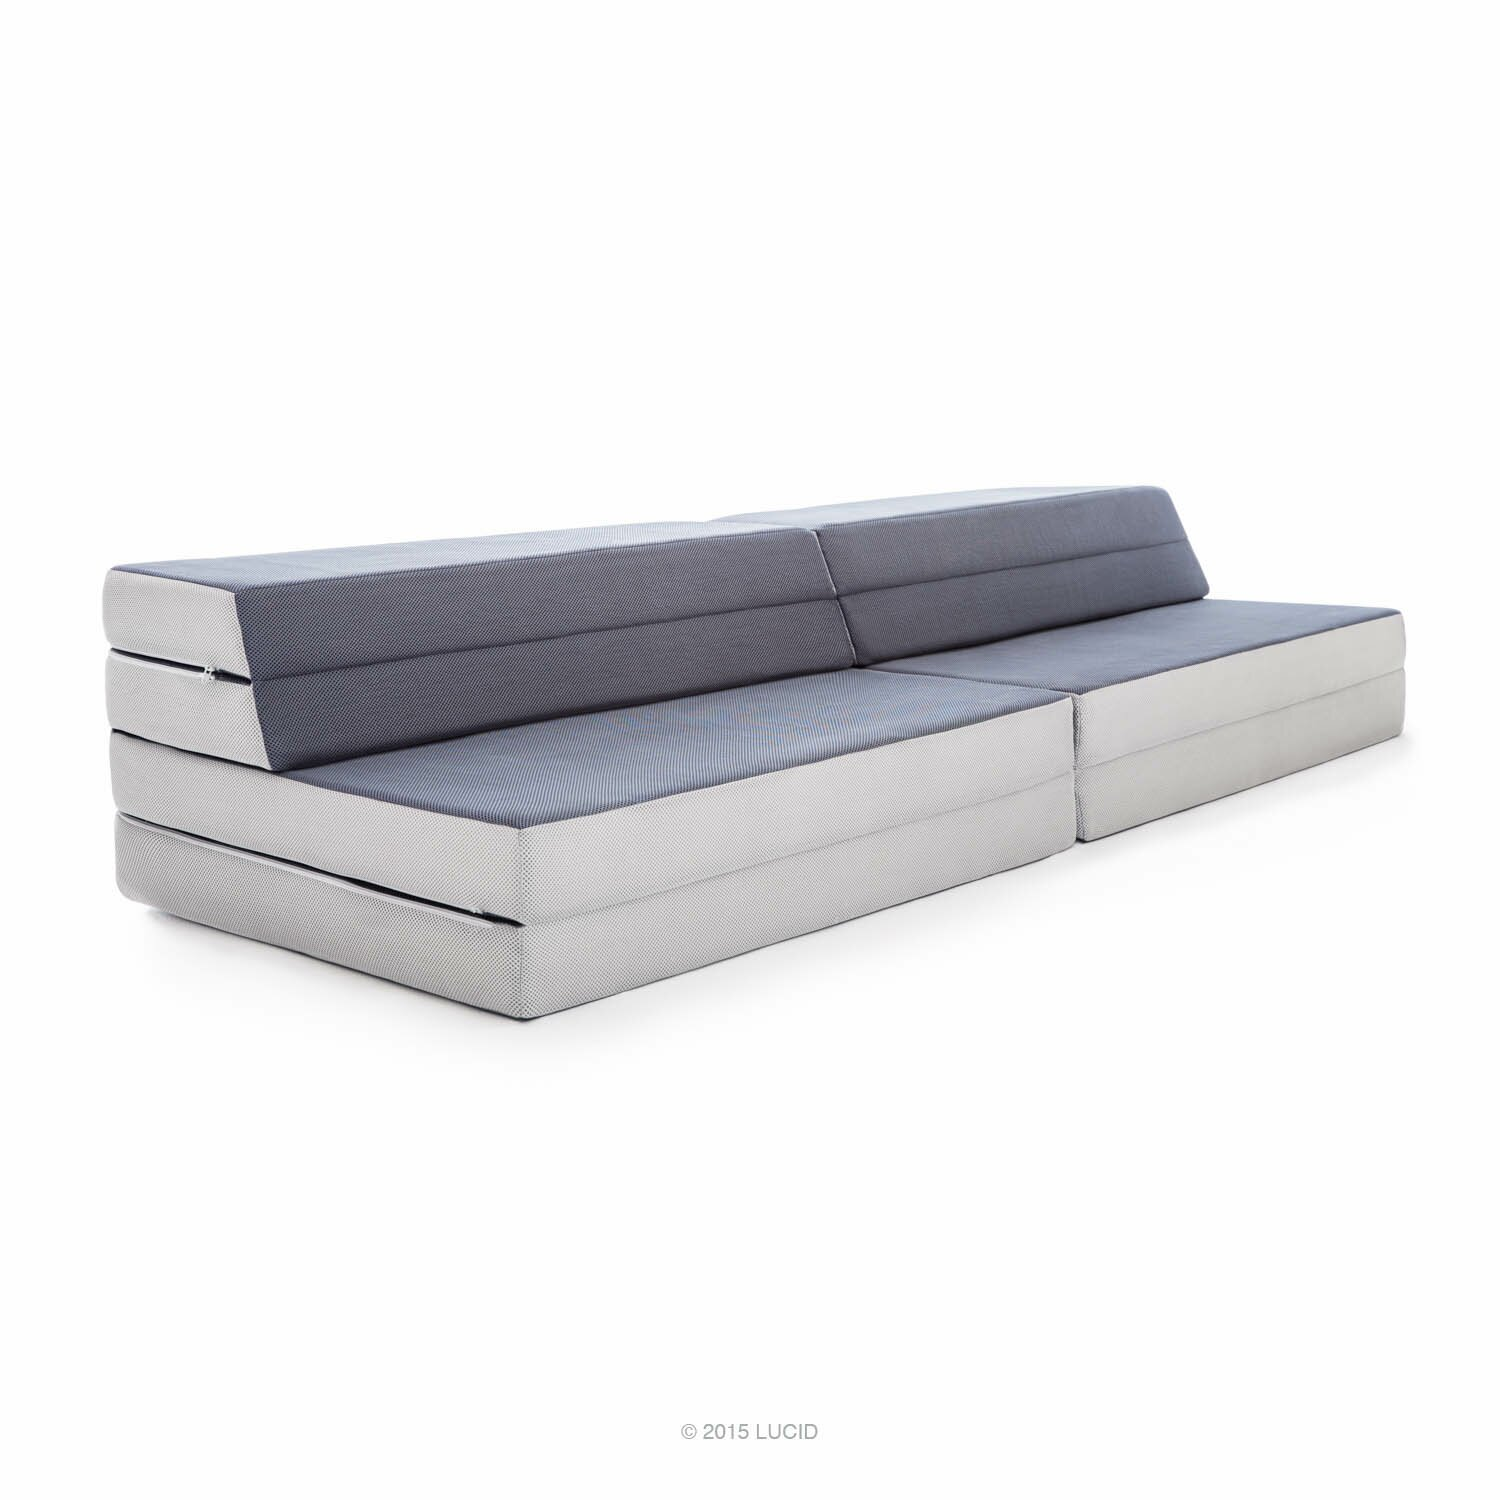 Lucid Folding 4 39 39 Firm Memory Foam Mattress Reviews